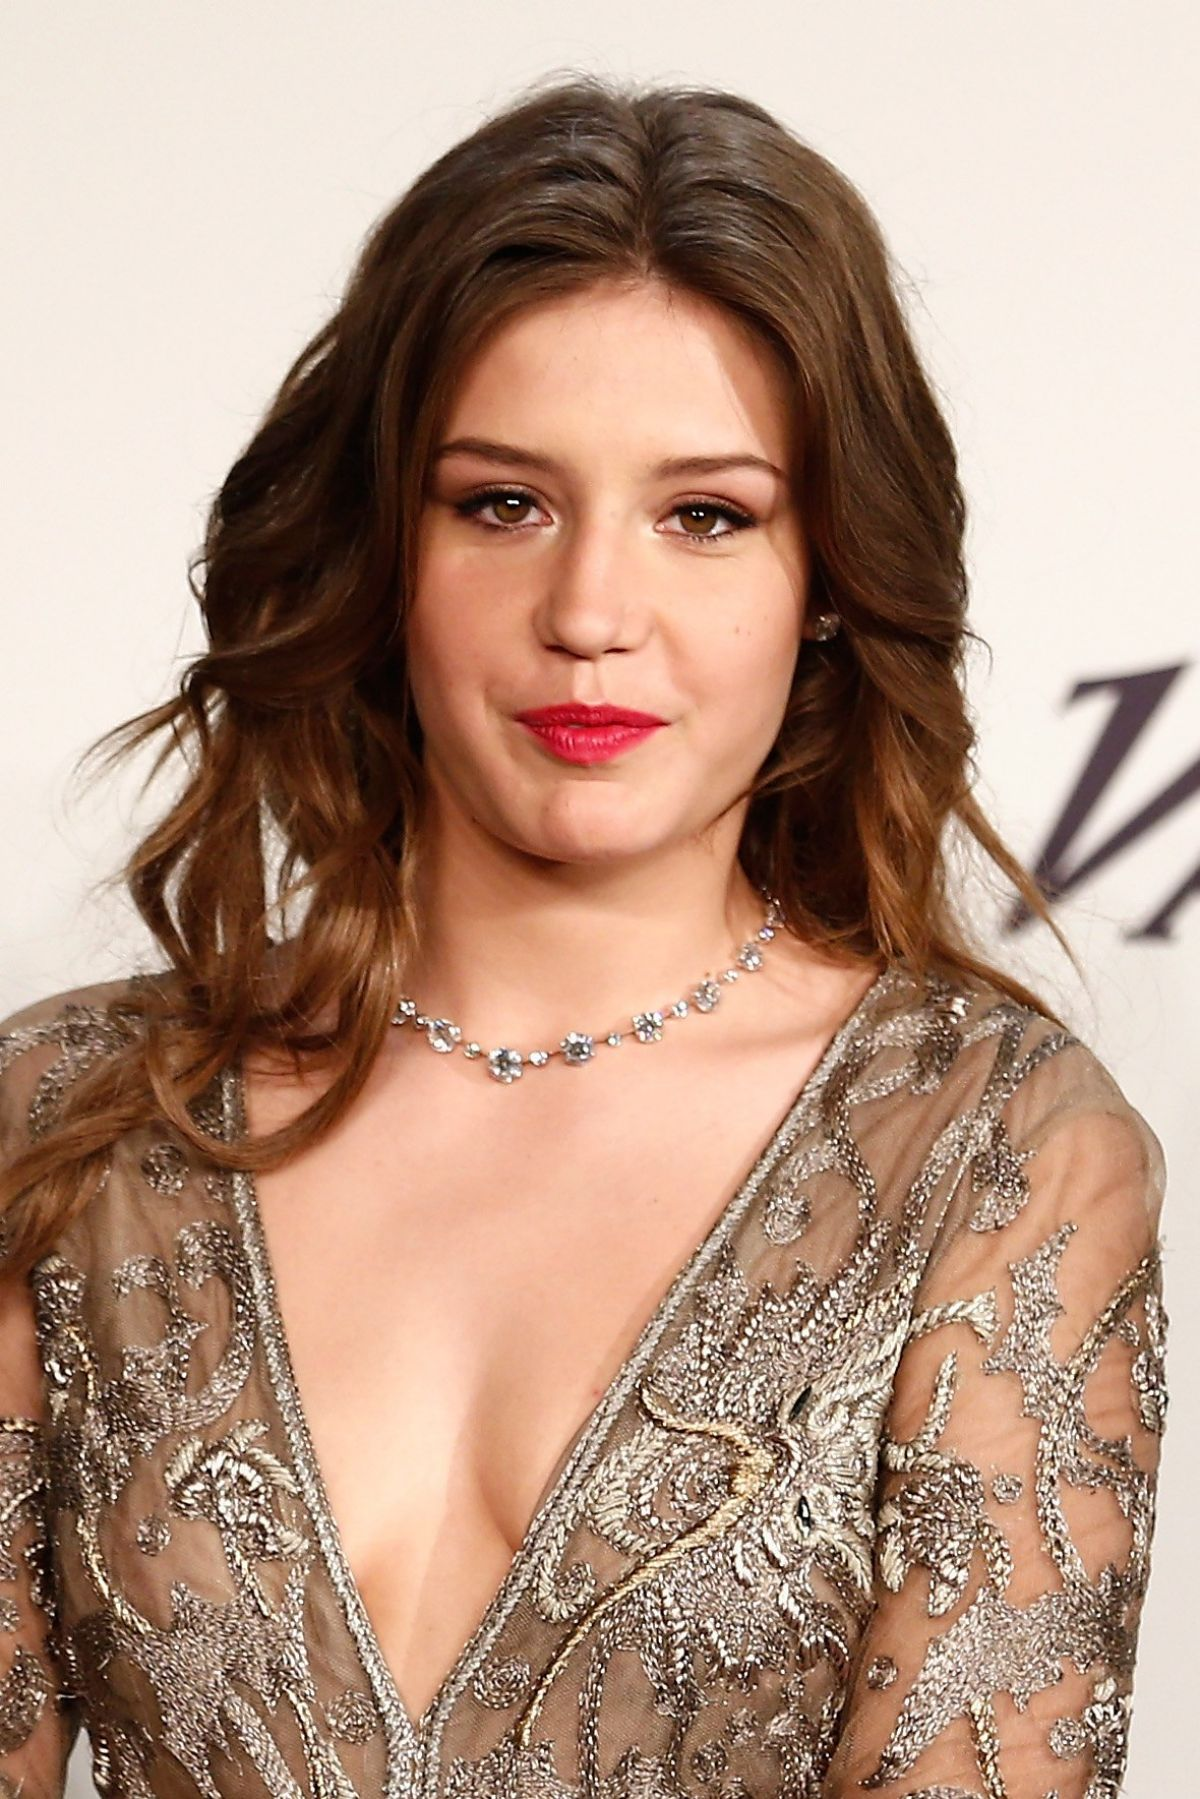 ADELE EXARCHOPOULOS at Chopard Trophy at Cannes Film Festival